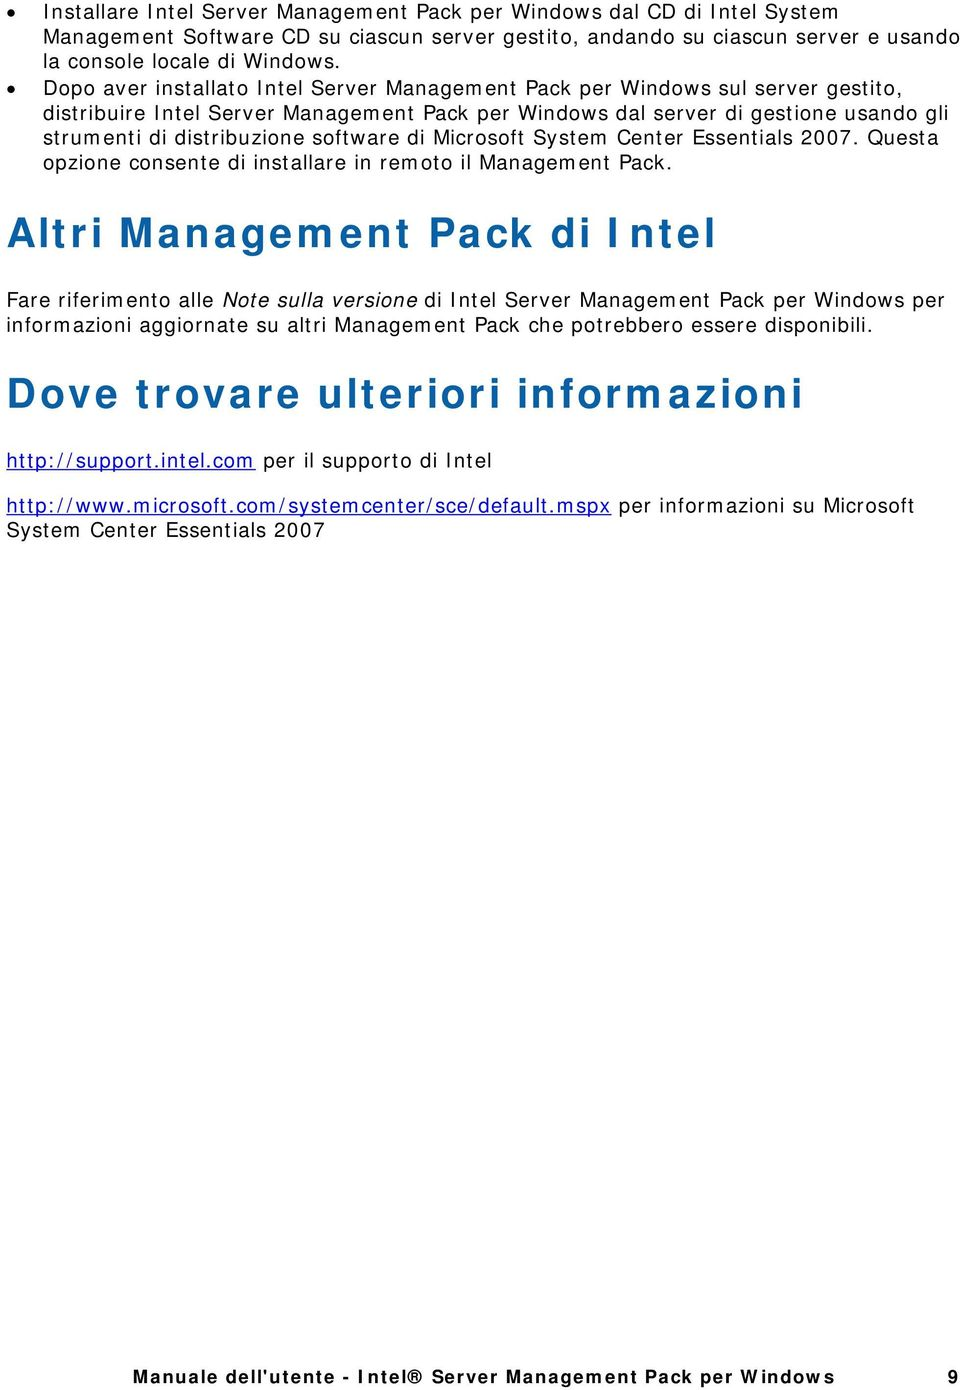 software di Microsoft System Center Essentials 2007. Questa opzione consente di installare in remoto il Management Pack.